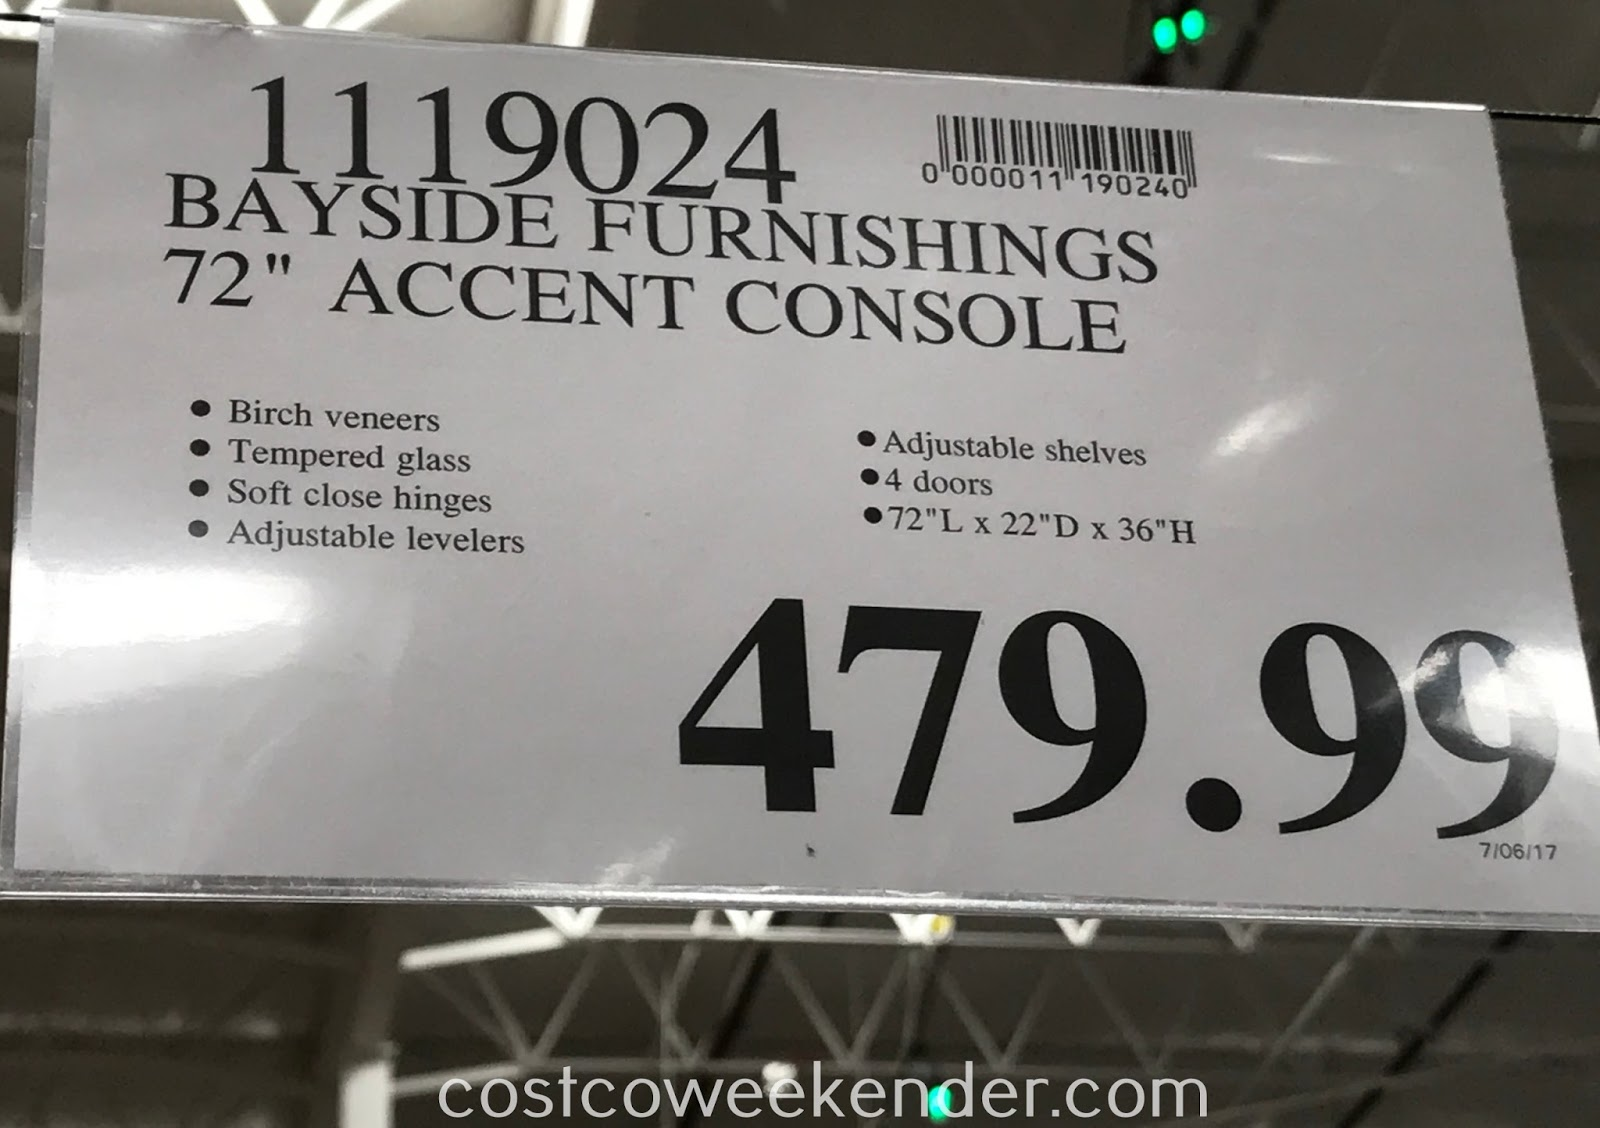 Deal for the Bayside Furnishings 72in Accent Console at Costco